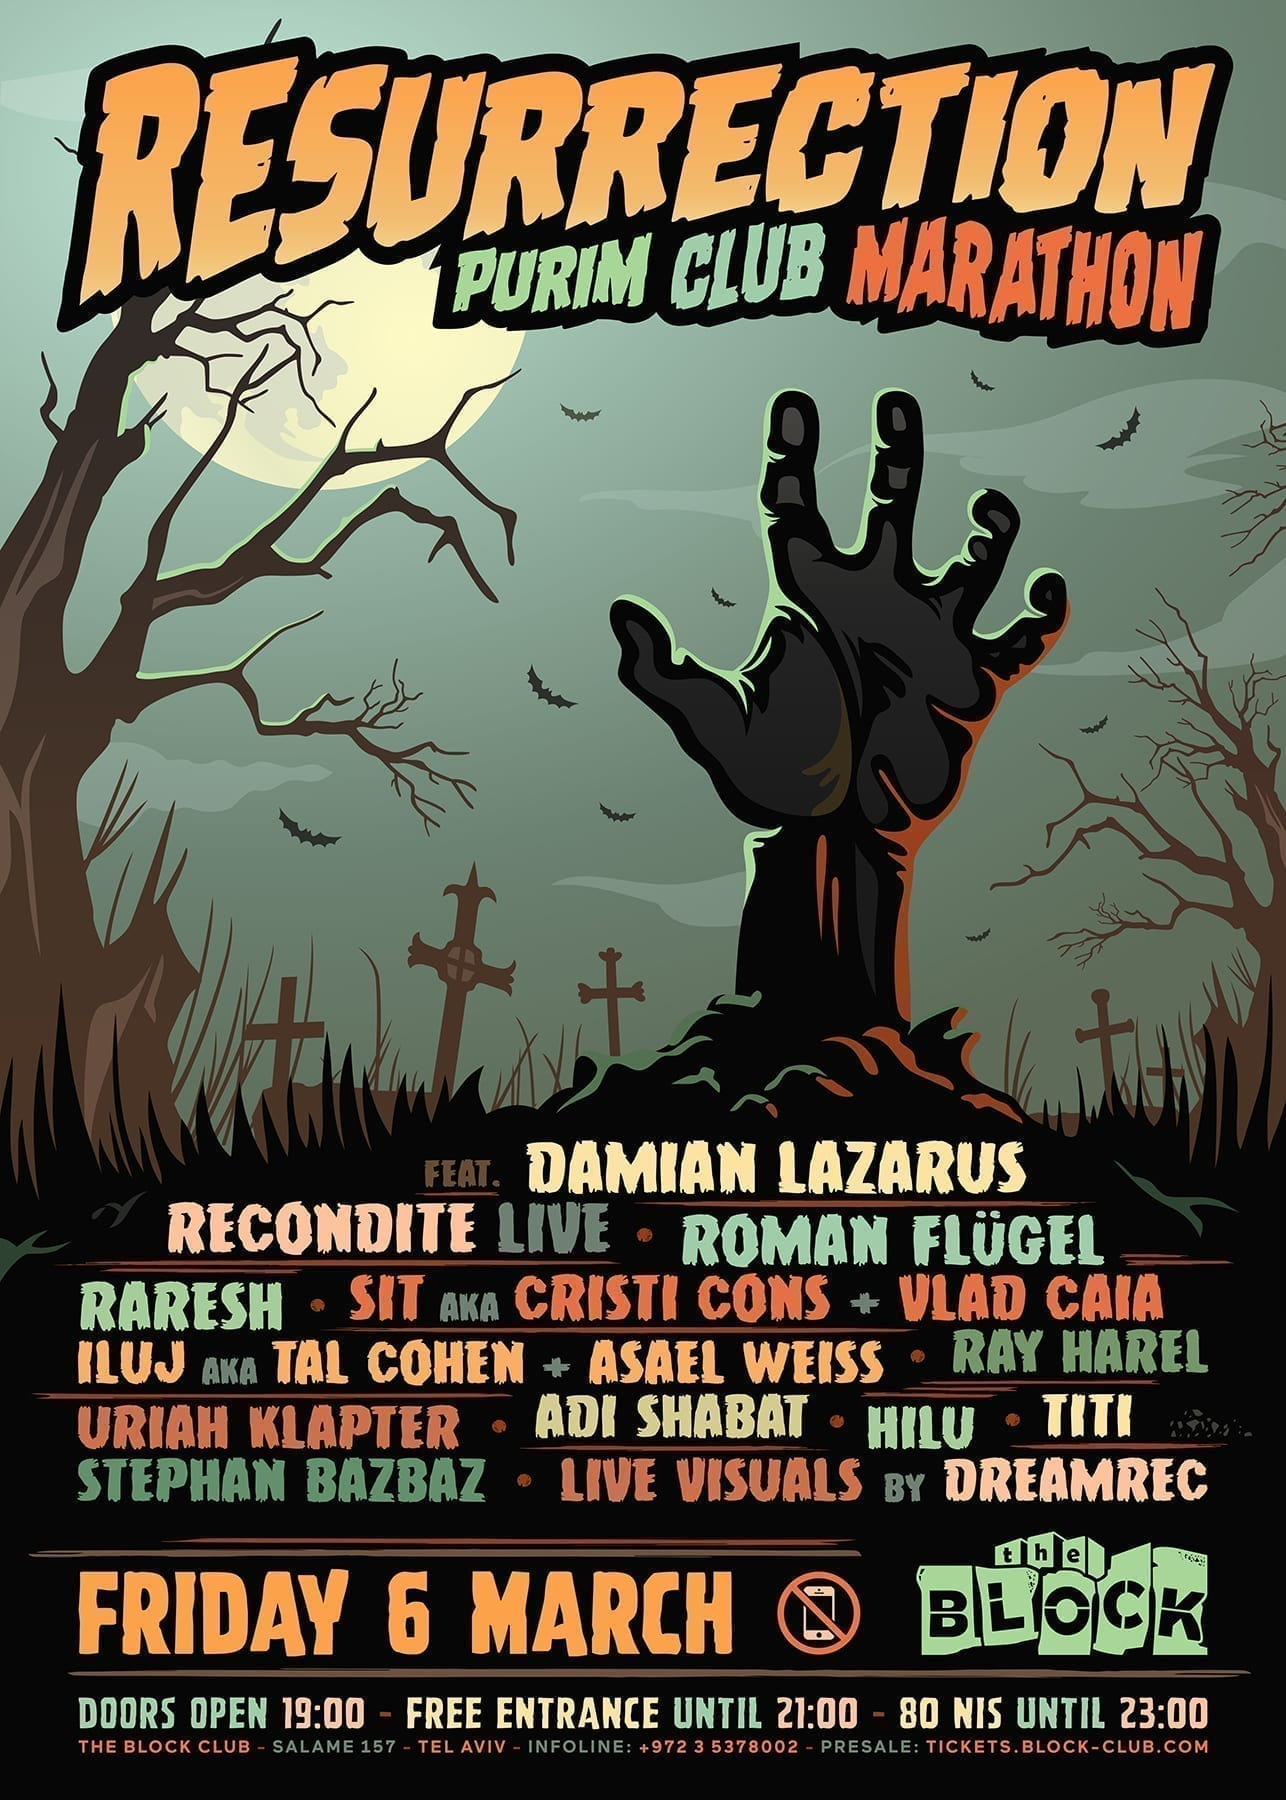 Resurrection - Purim Club Marathon at The Block